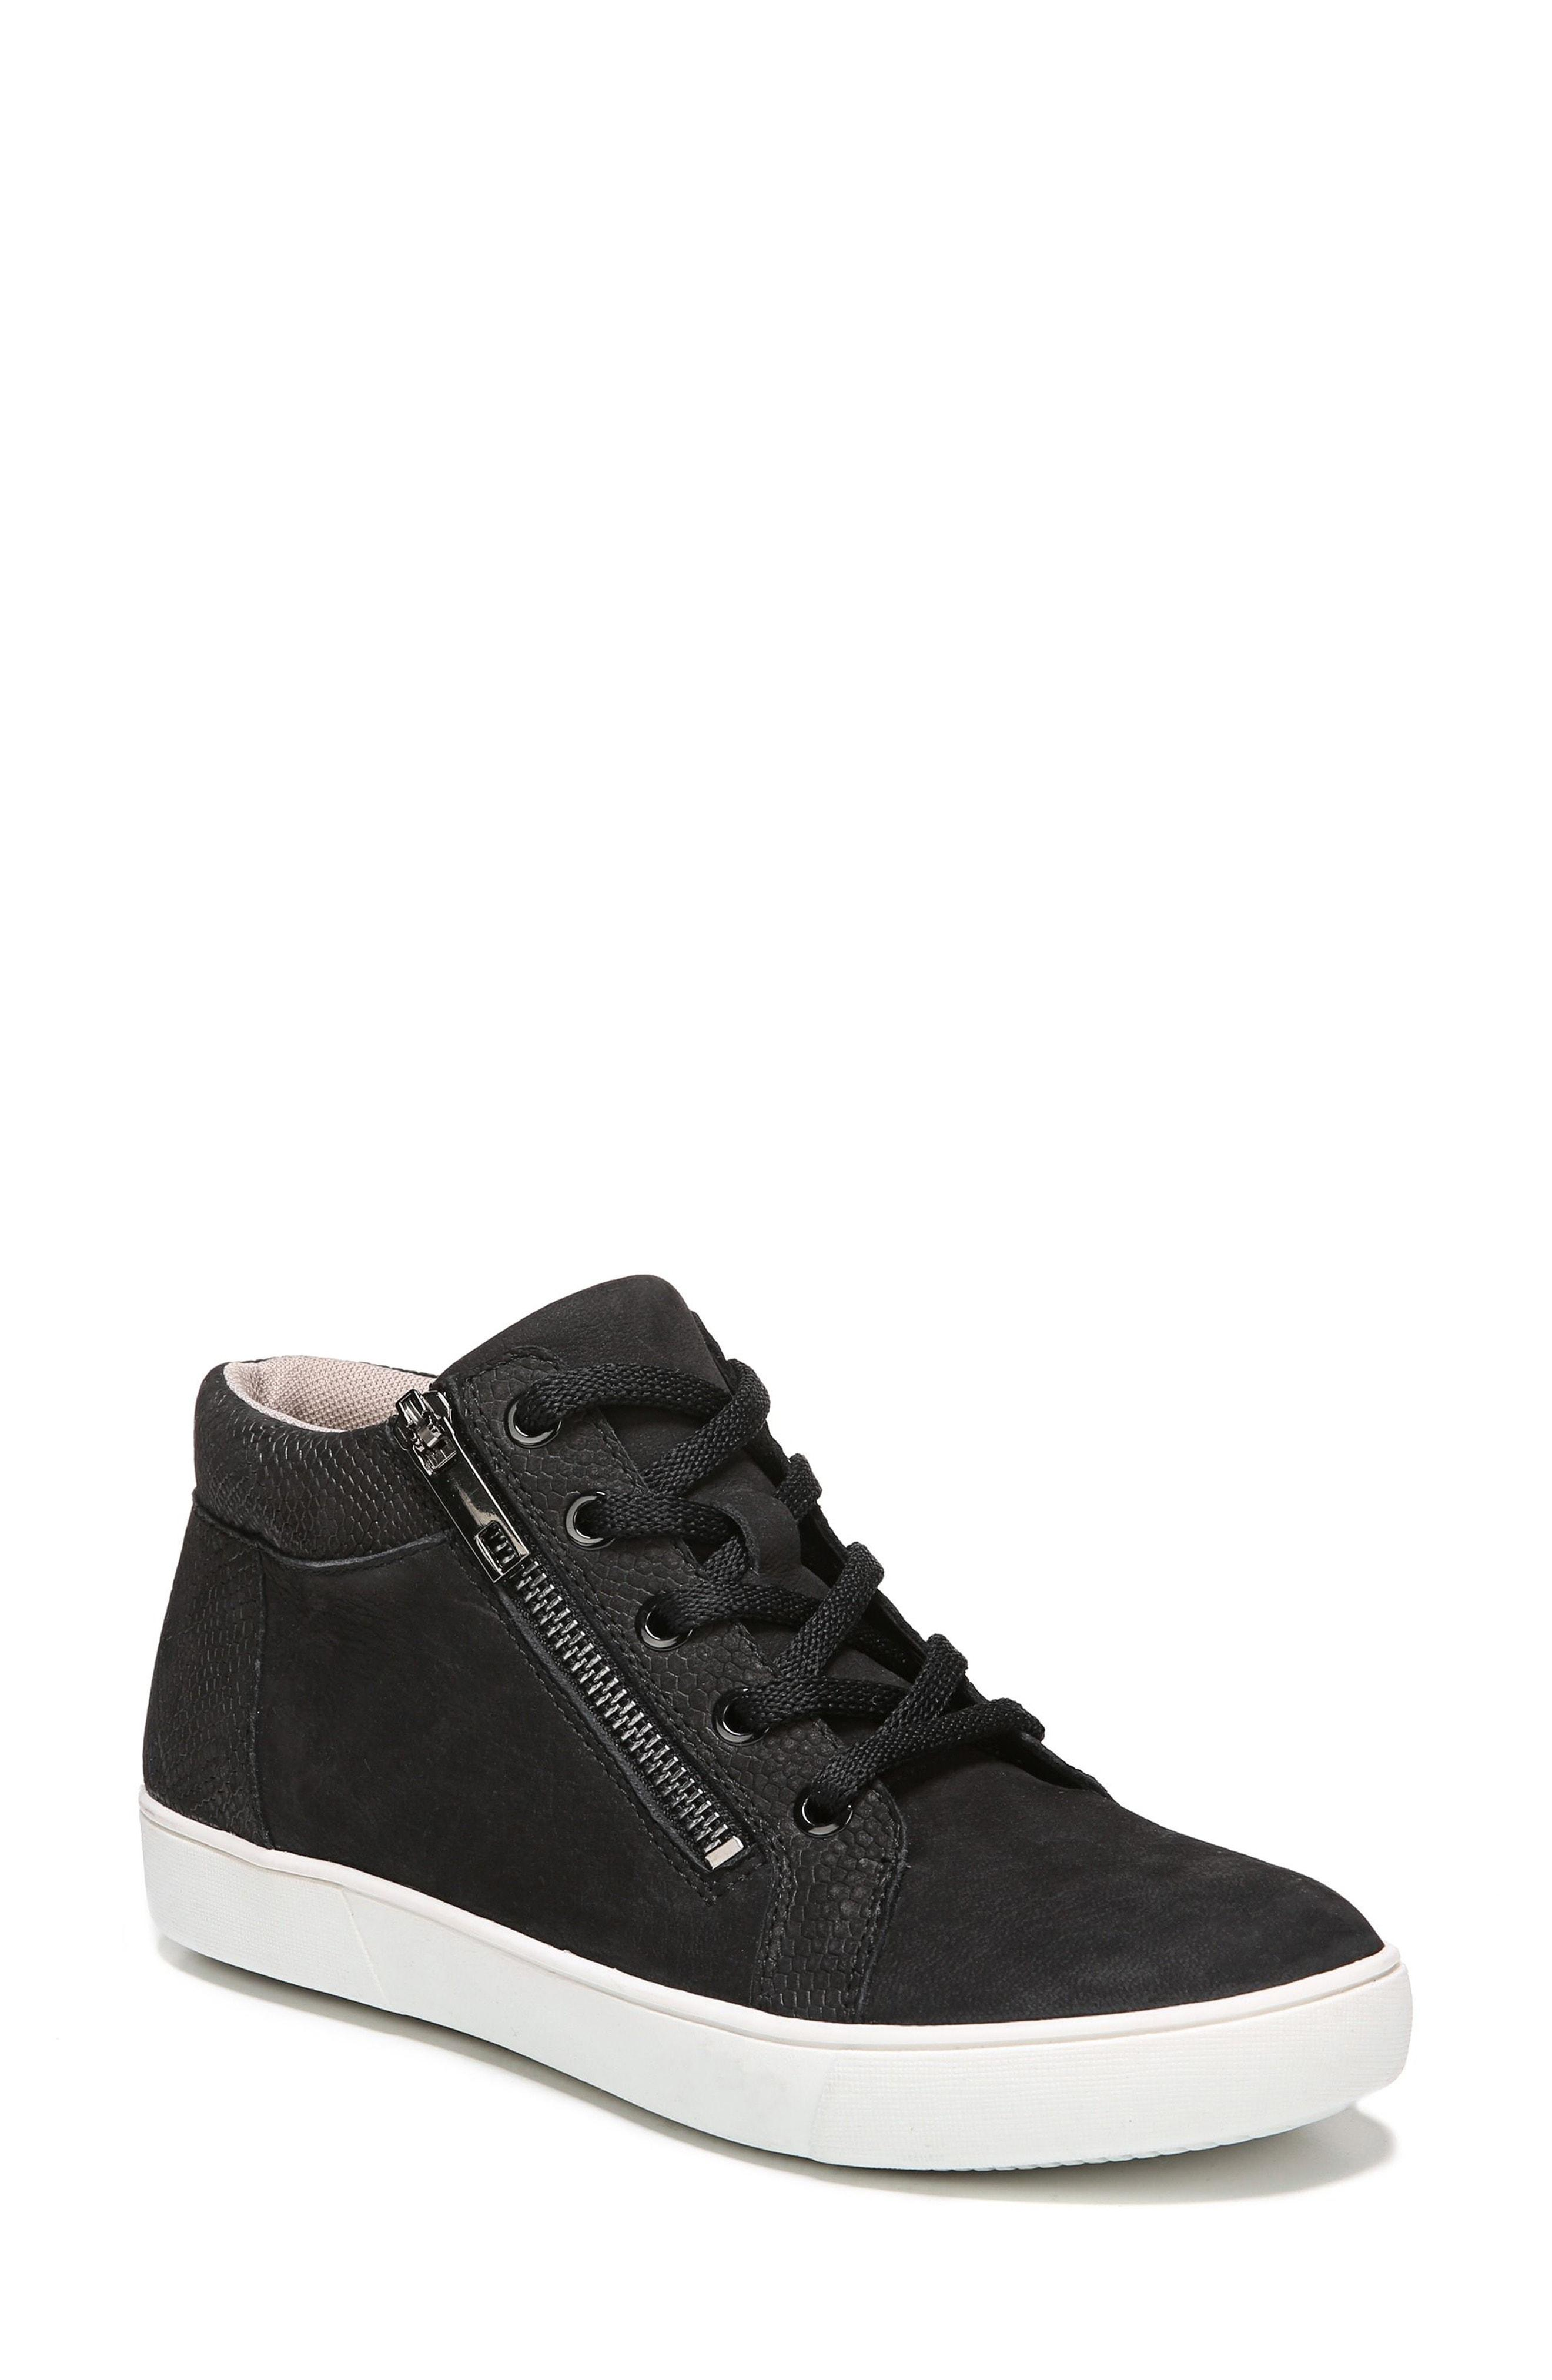 21cebb38ad6f Lyst - Naturalizer Motley Sneaker in Black